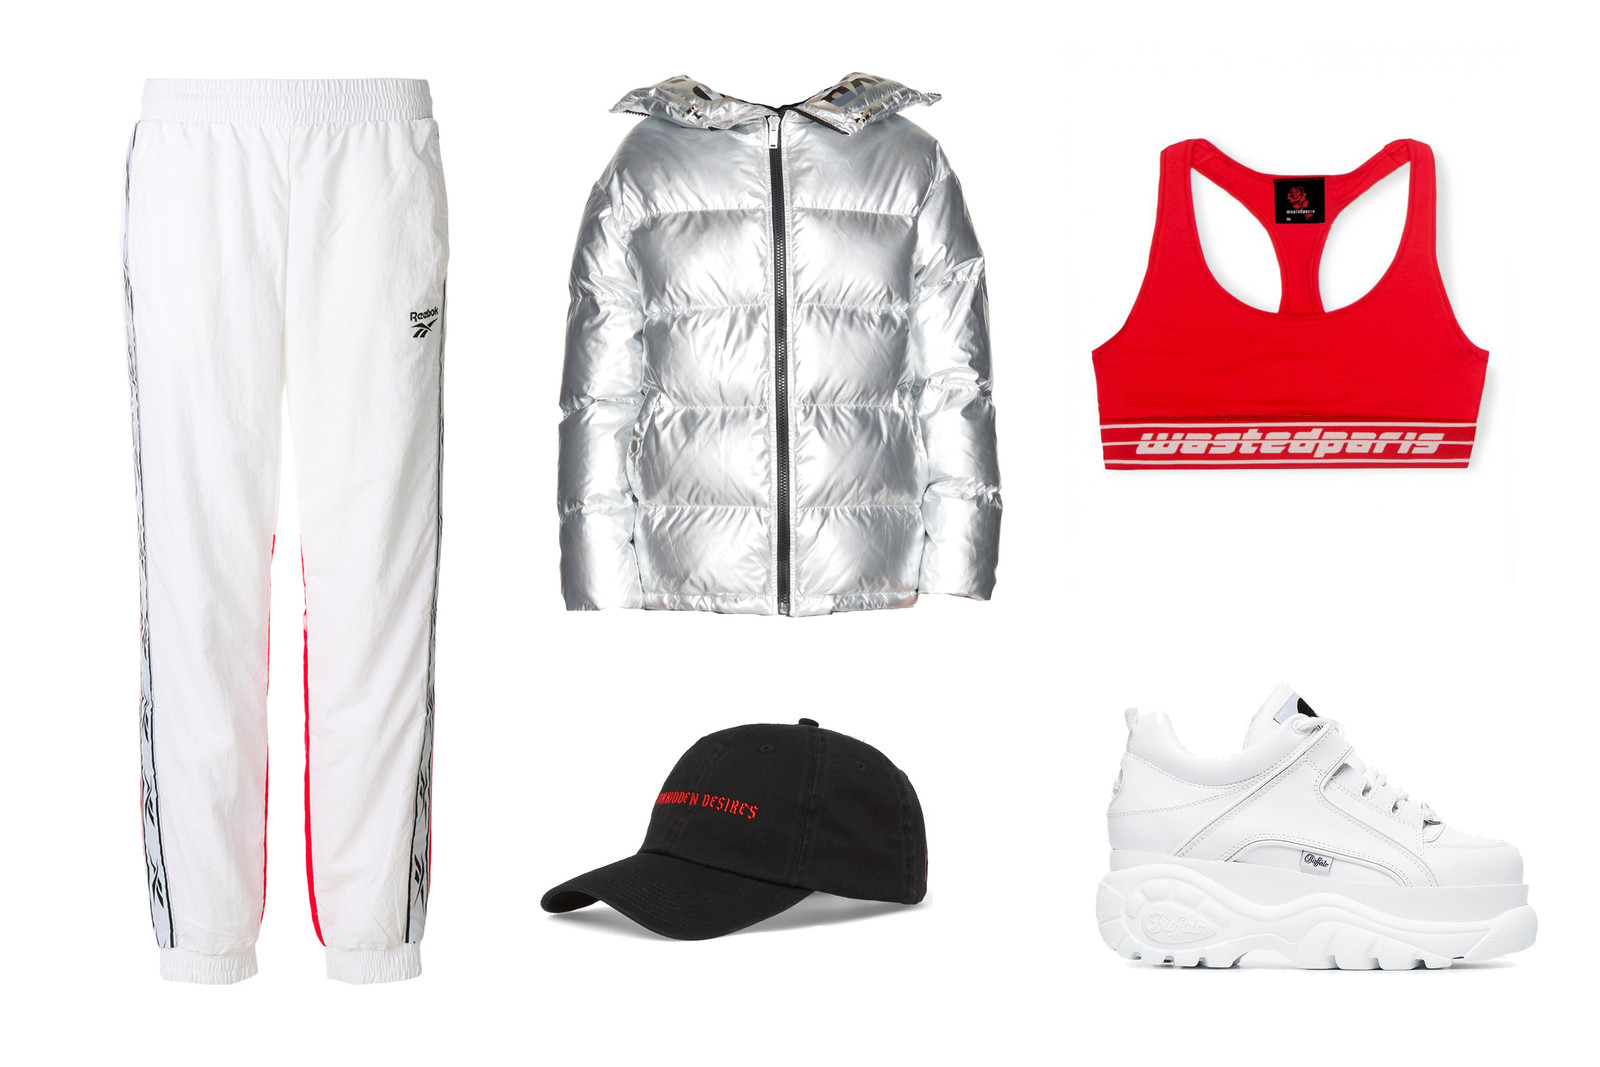 HYPEBAE Editors Style Guide How to Wear Chunky Dad Sneakers Acne Studios New Balance Buffalo Supreme Outfit Inspiration